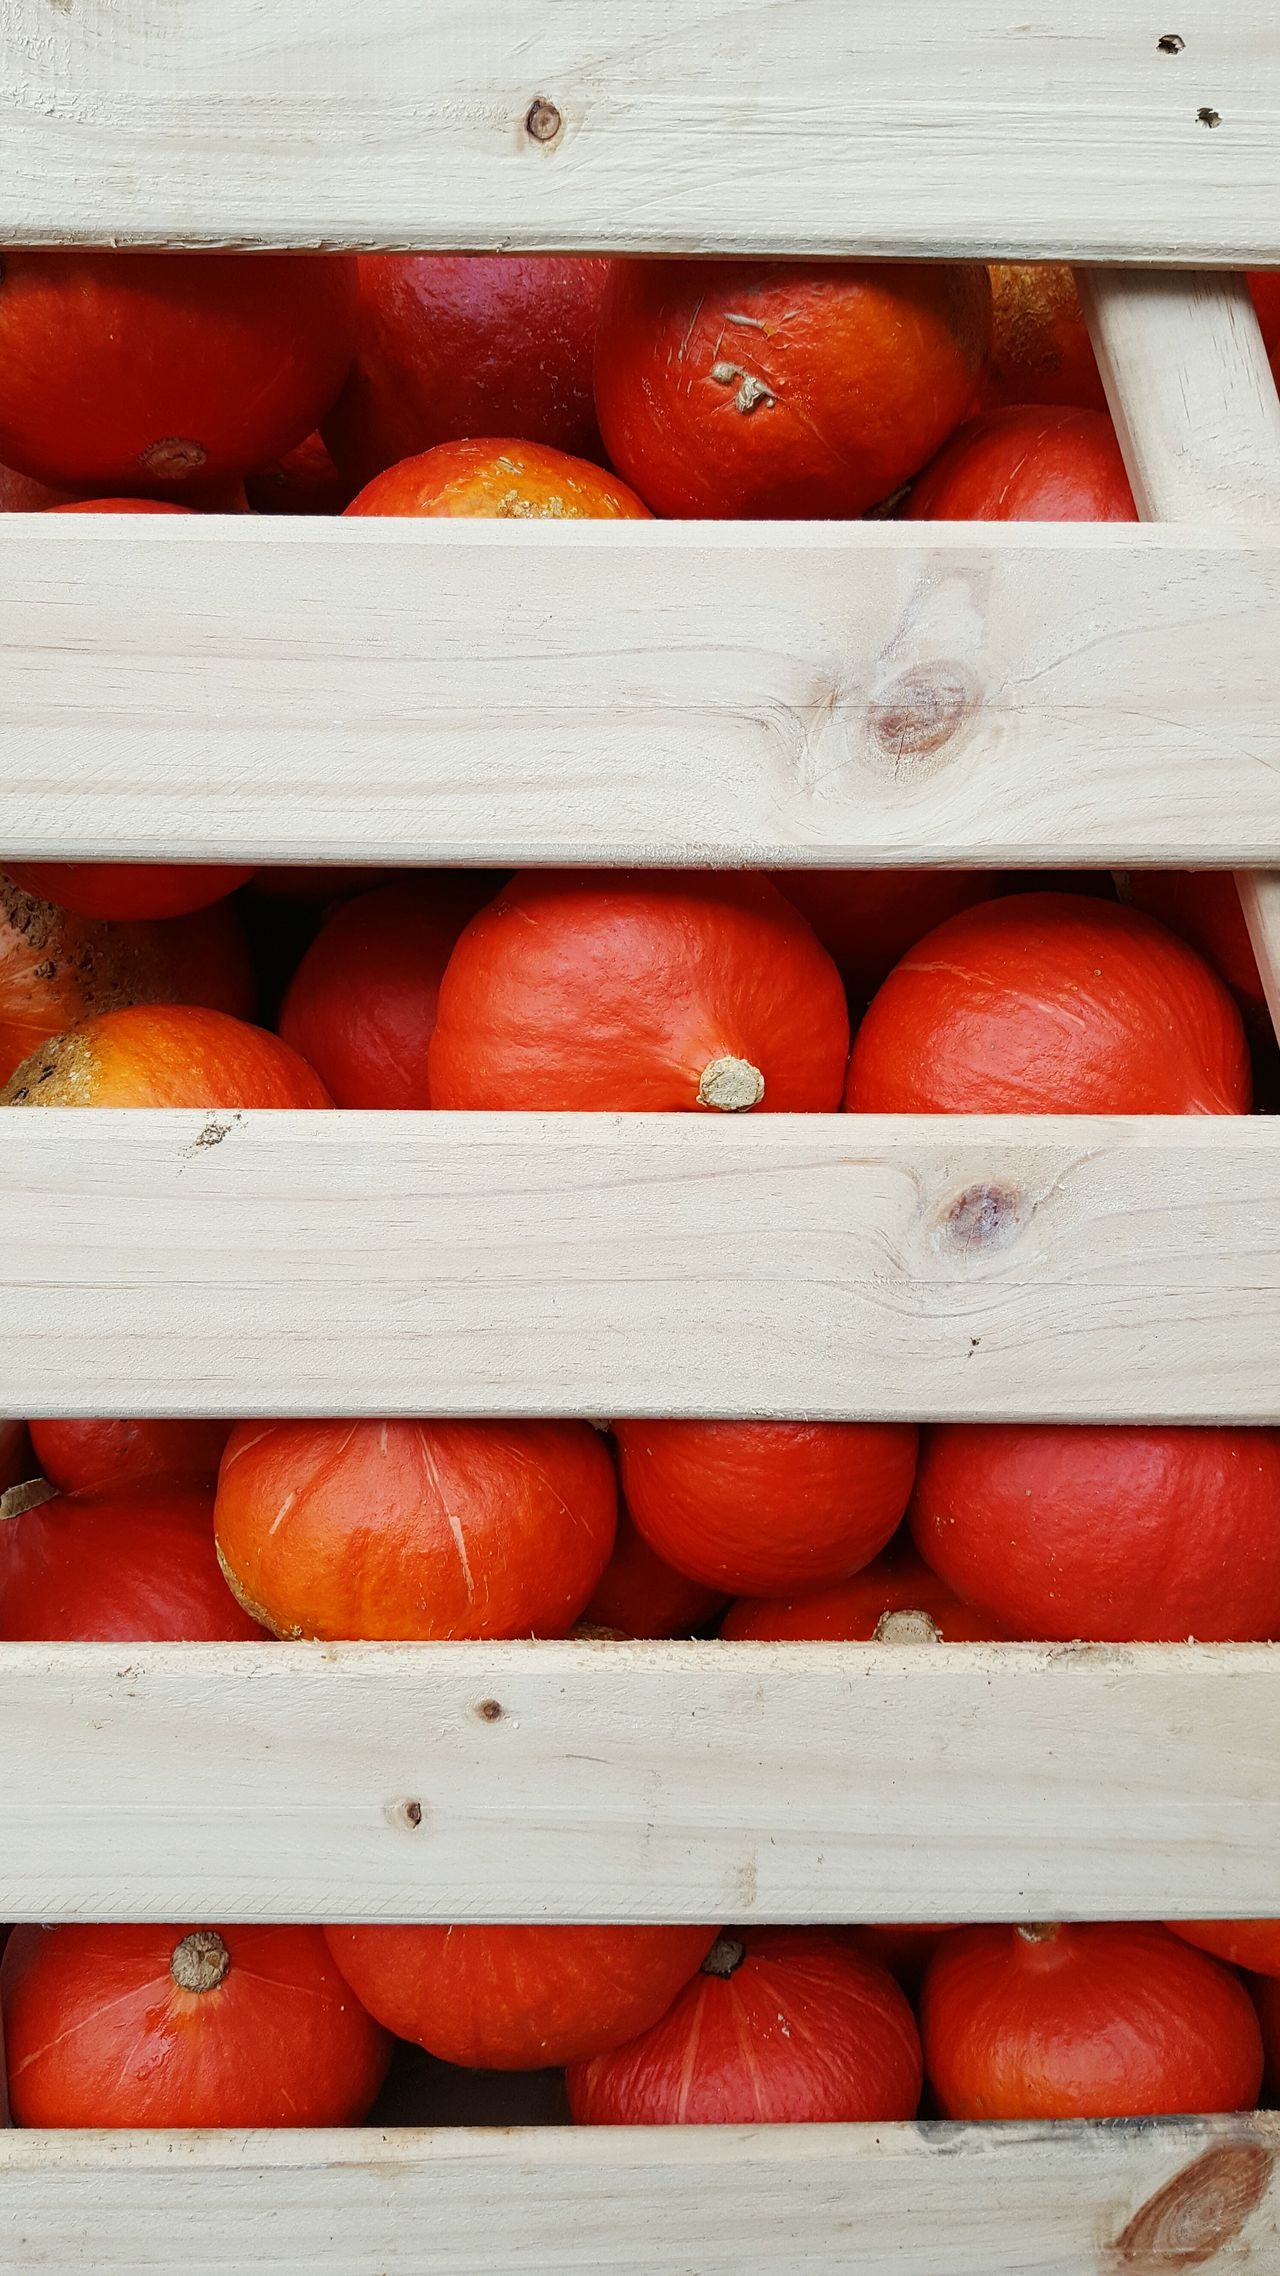 Crate filled with pumpkins No People Red Pumpkin Stack Pile Pumpkins Crate Large Group Of Objects Close Up Wood Fruit Health Healthy Food Healthy Eating Full Frame Backgrounds Stack Repetition Day Large Group Of Objects Red No People Exploring Style